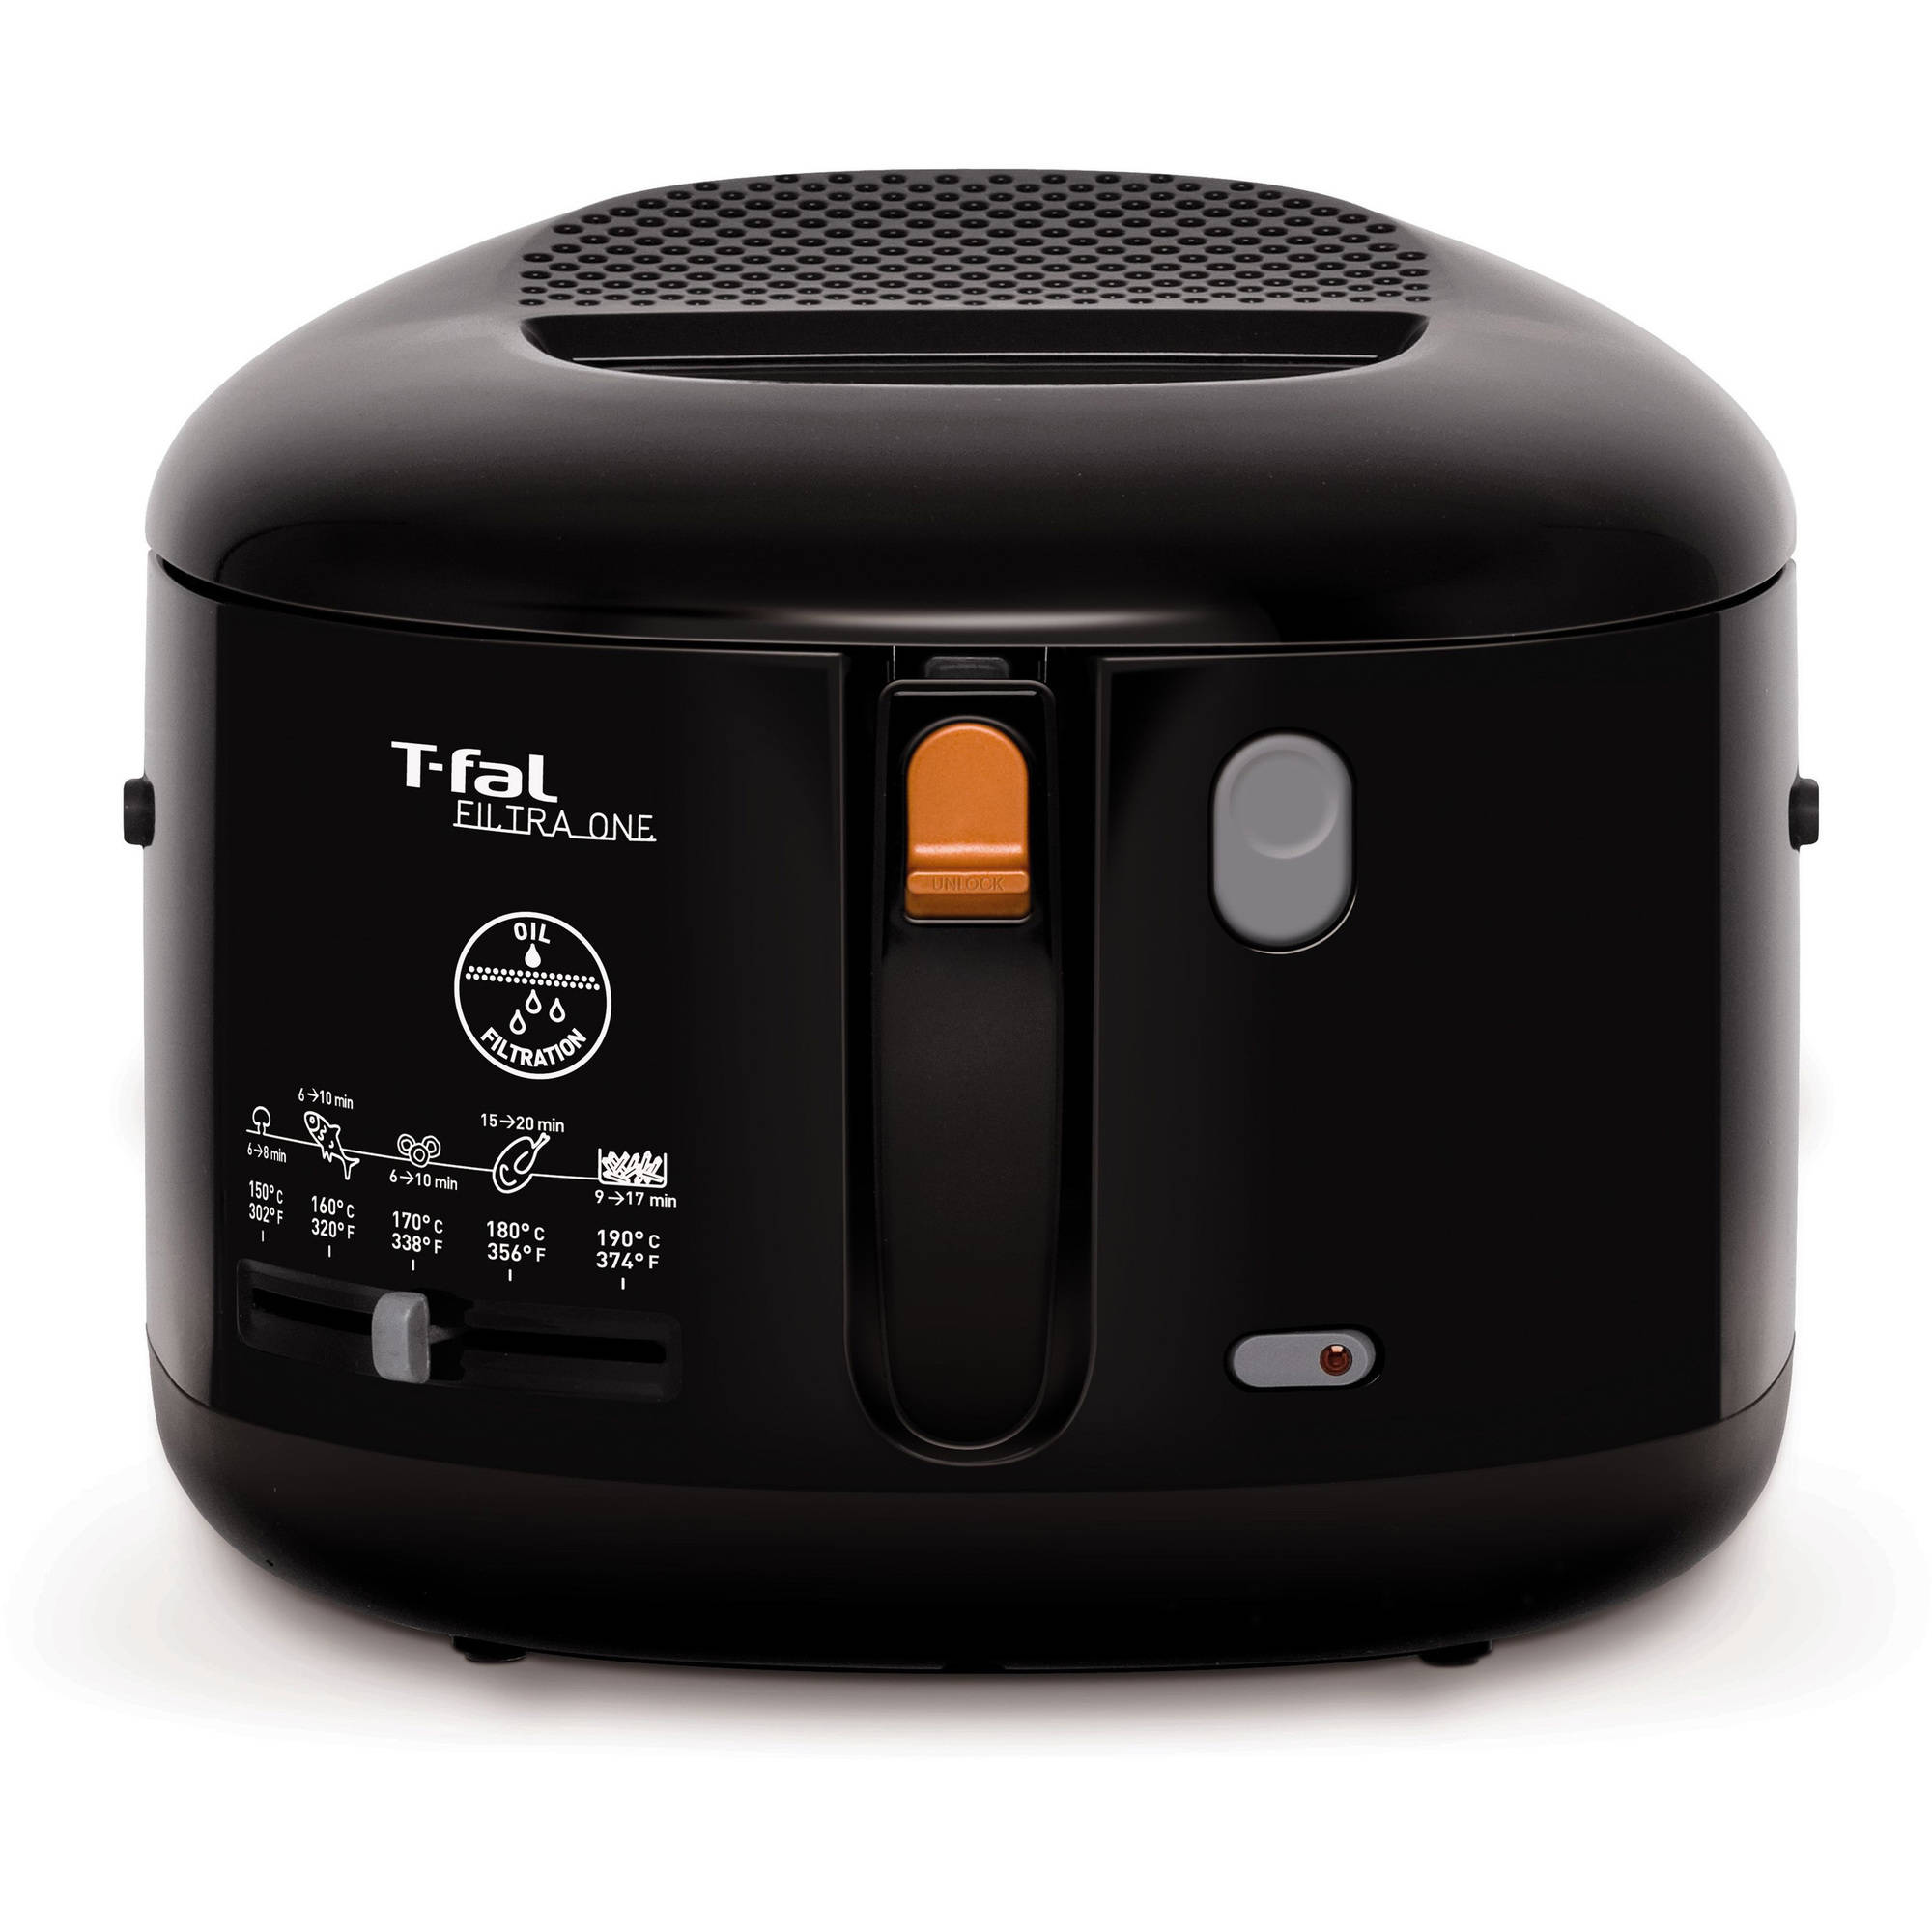 tfal filtra one 21l cool touch deep fryer